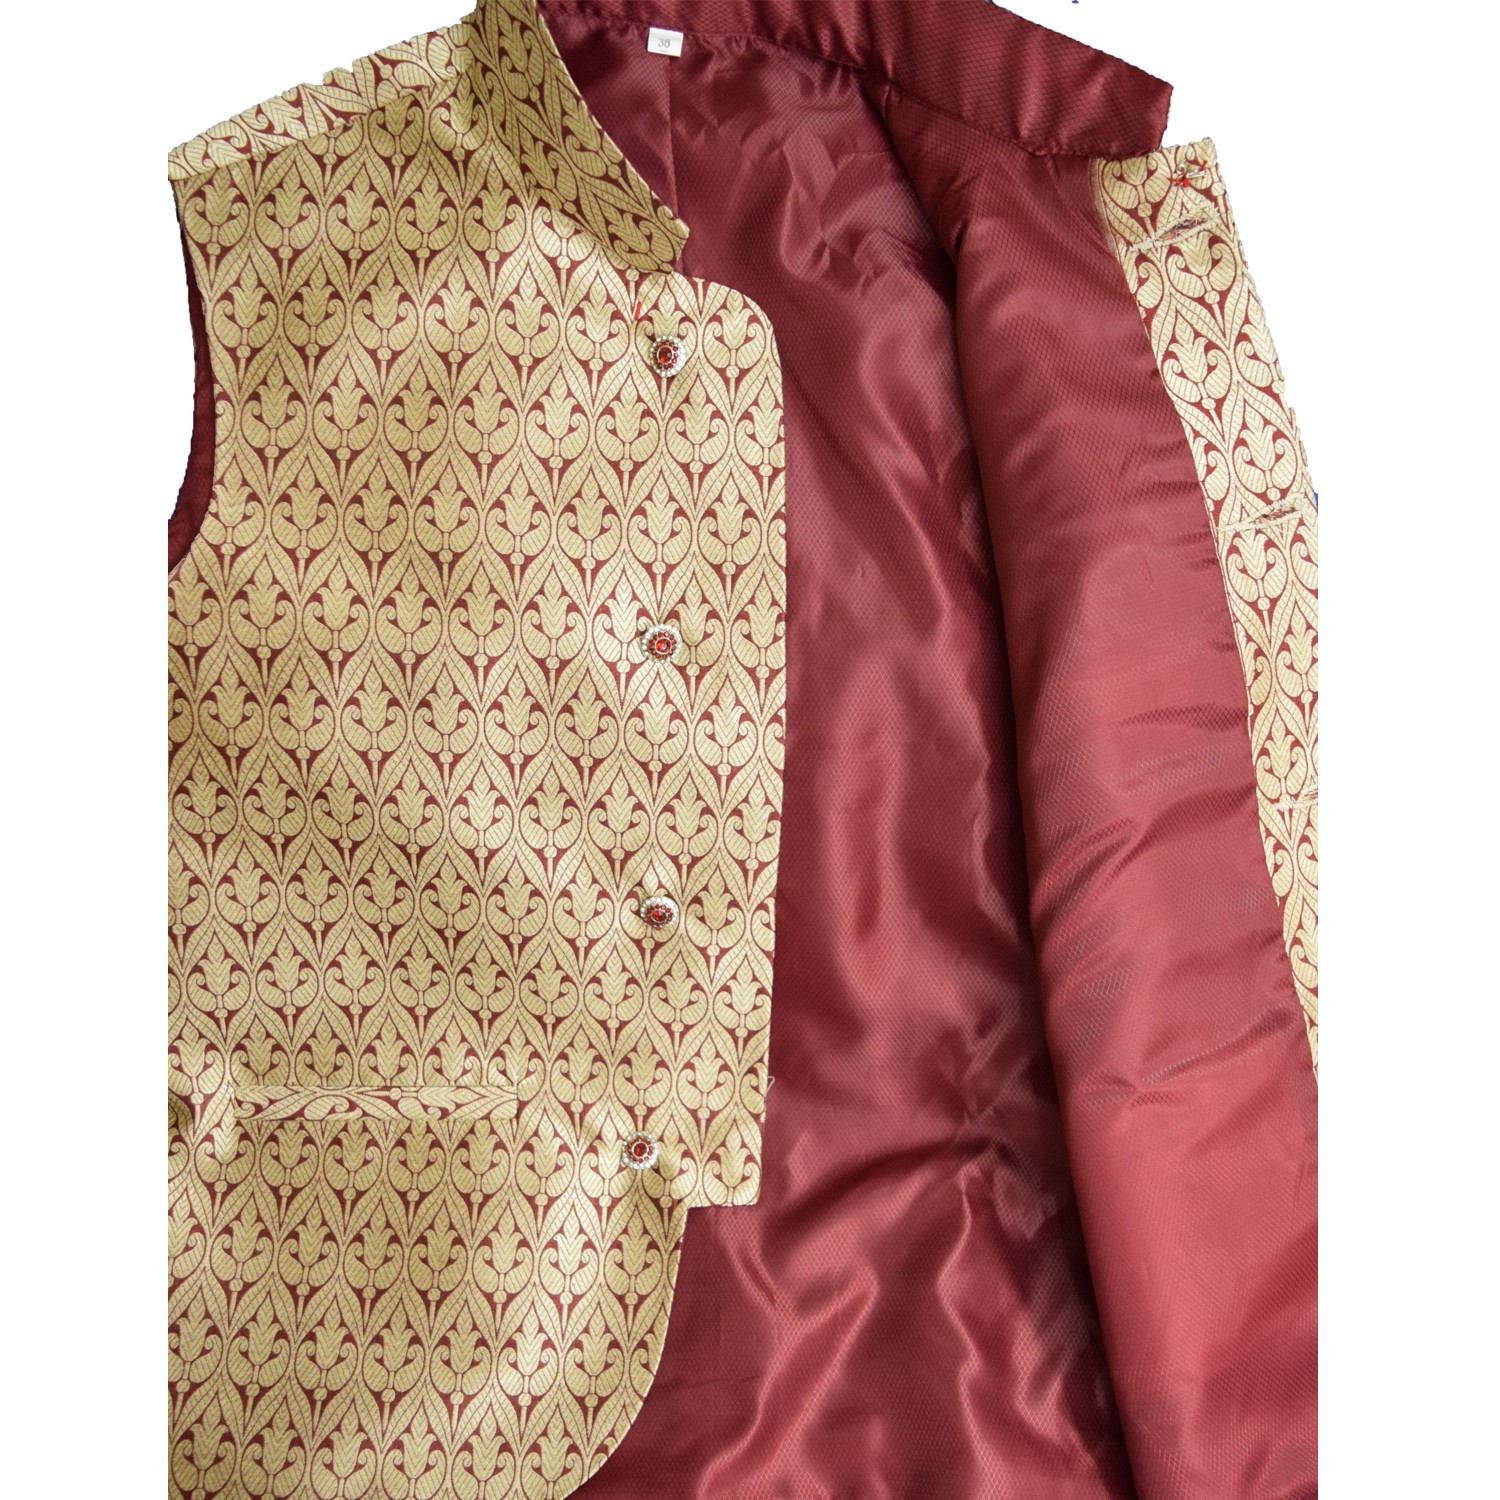 Men/'s Indian  Jacquard Waist Coat Nehru Jacket Modi Jacket JA1000